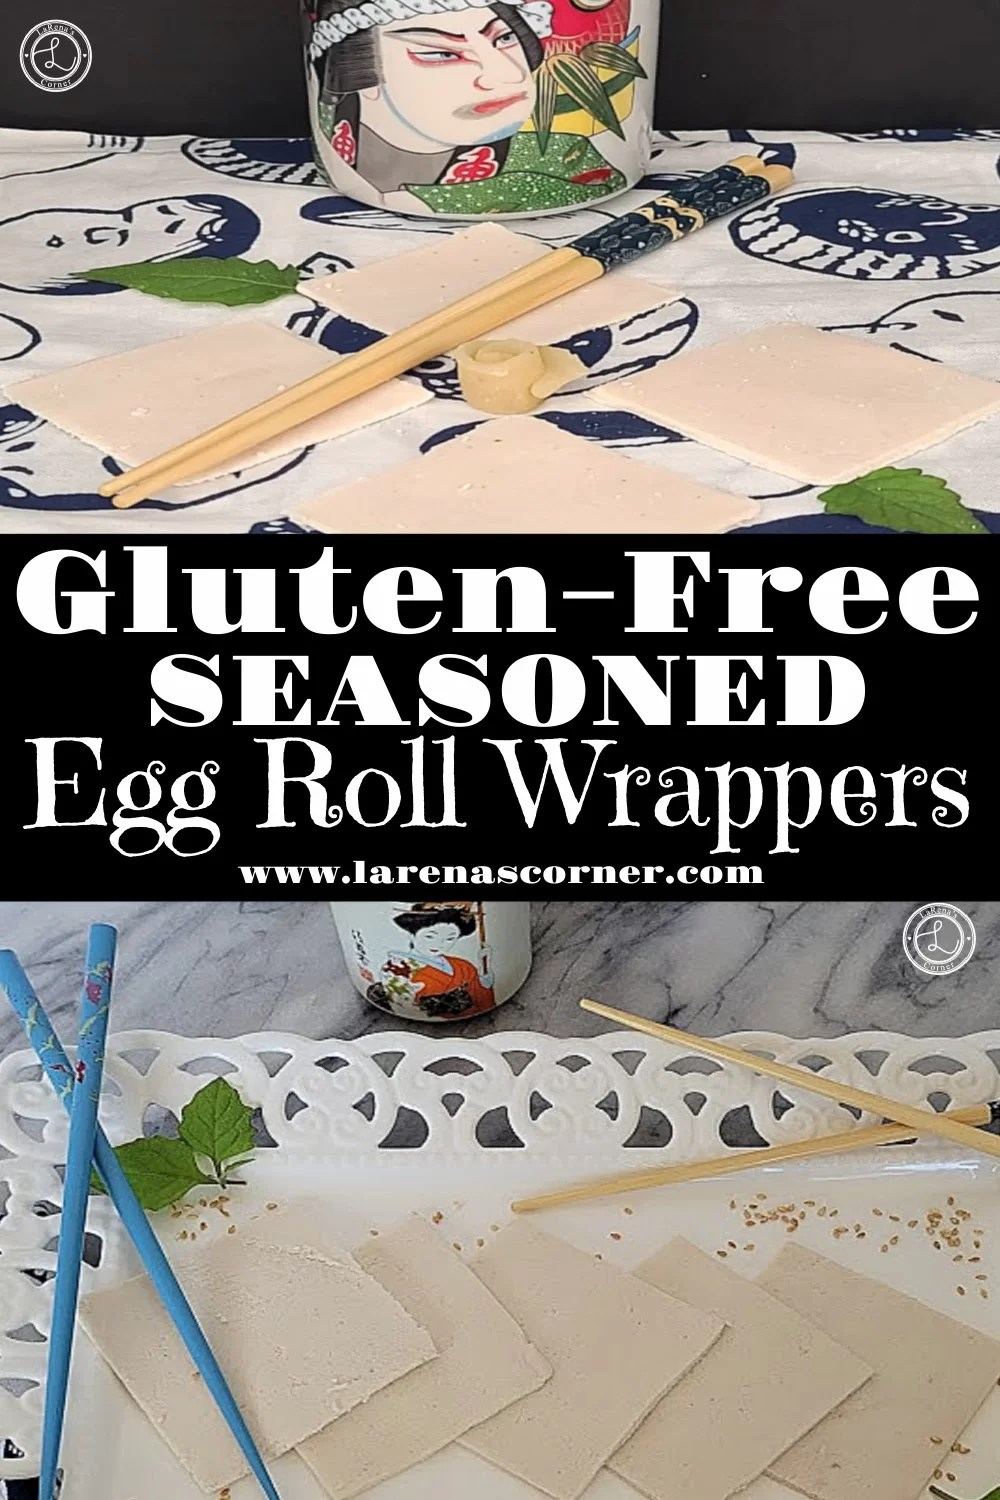 Gluten-Free Egg Roll Wrappers in two different pictures